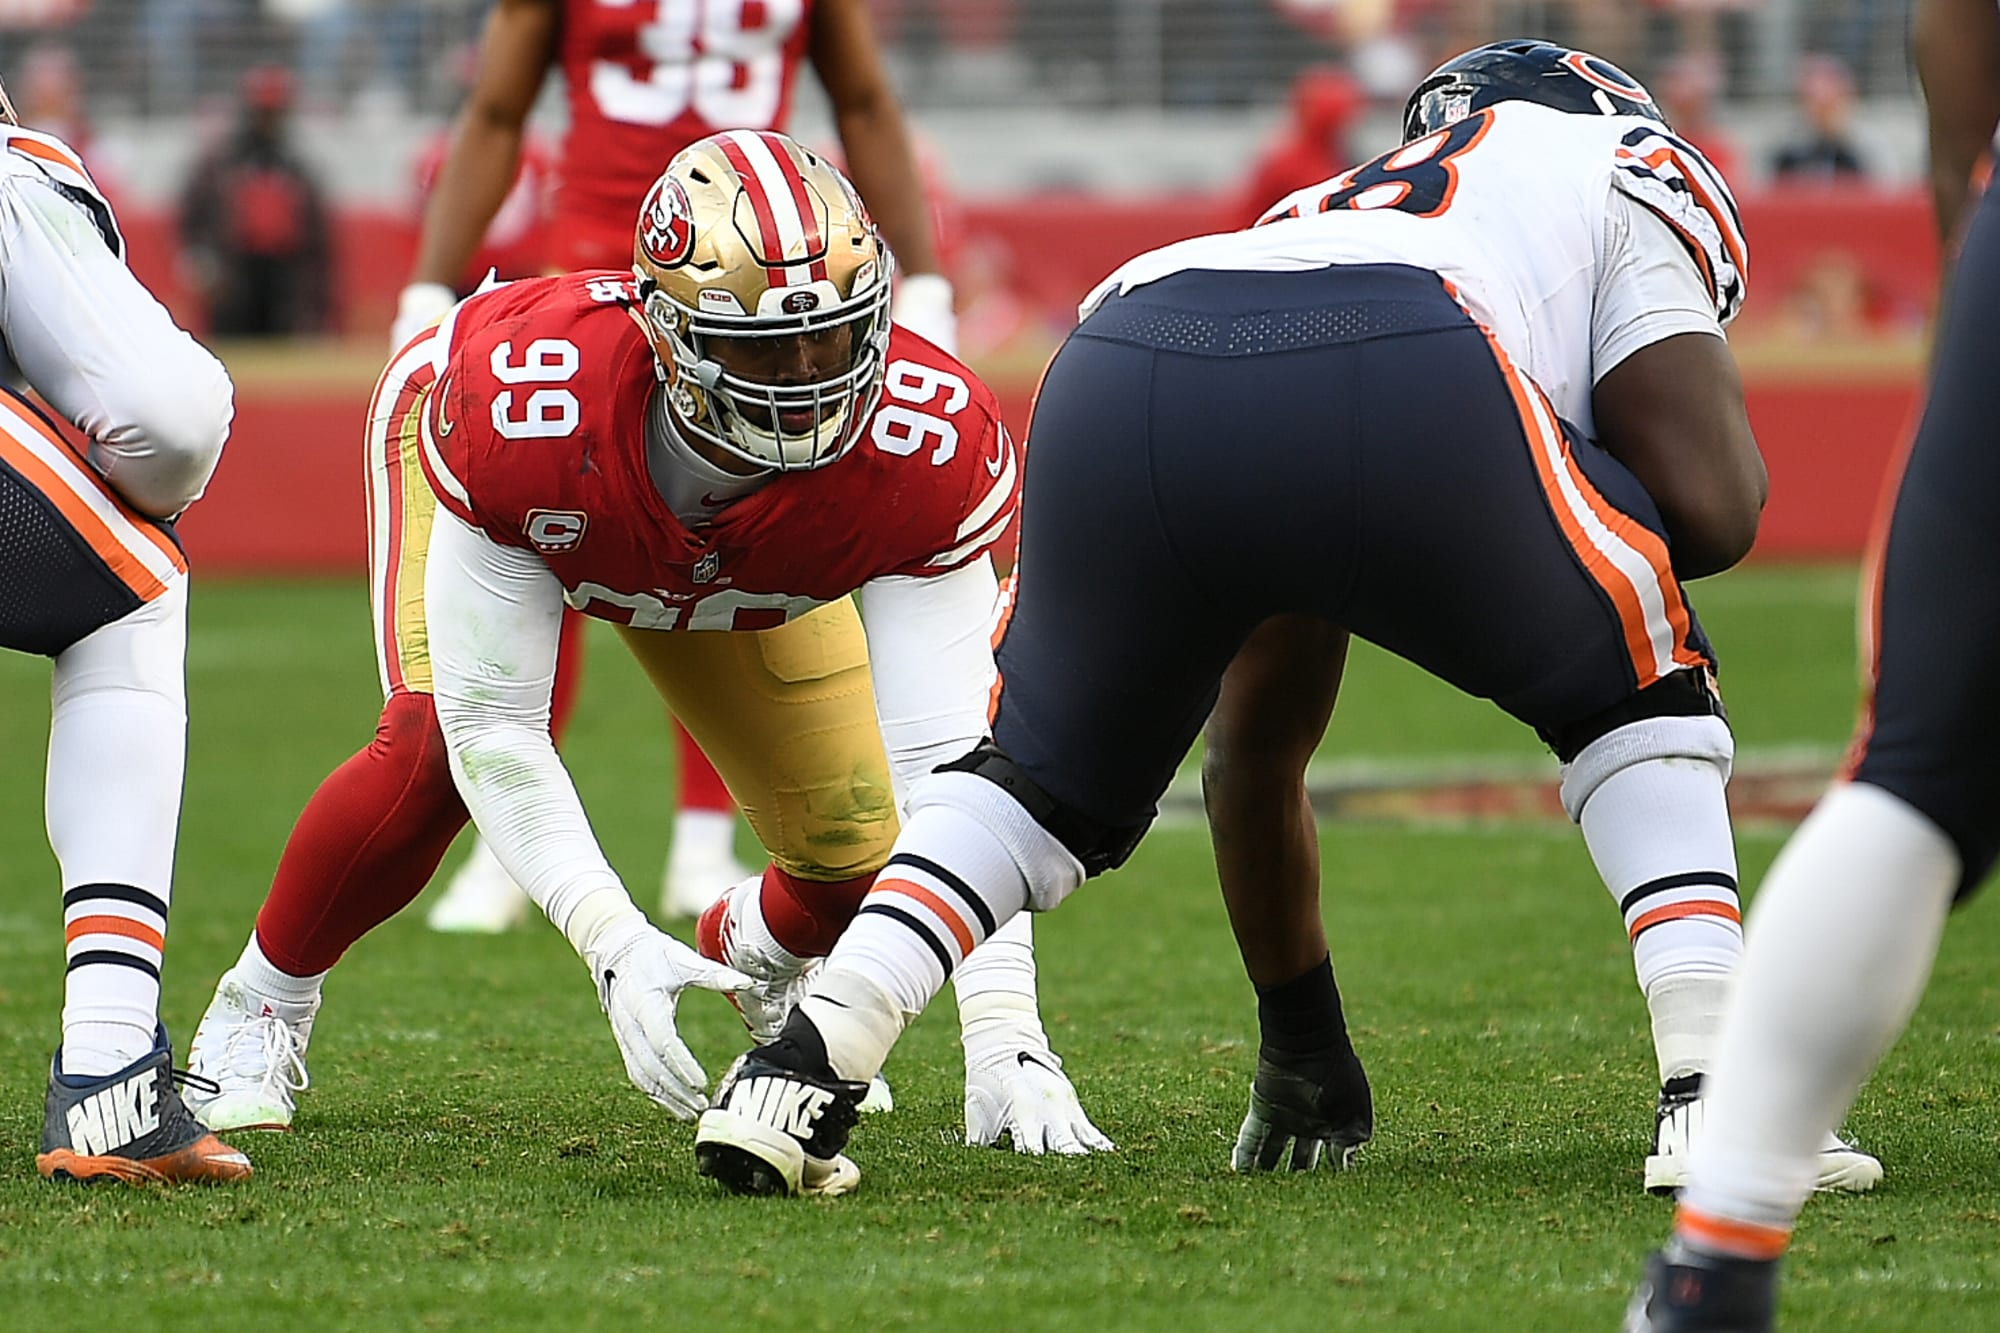 49ers Pros And Cons Behind The New Wide 9 Defensive Alignment